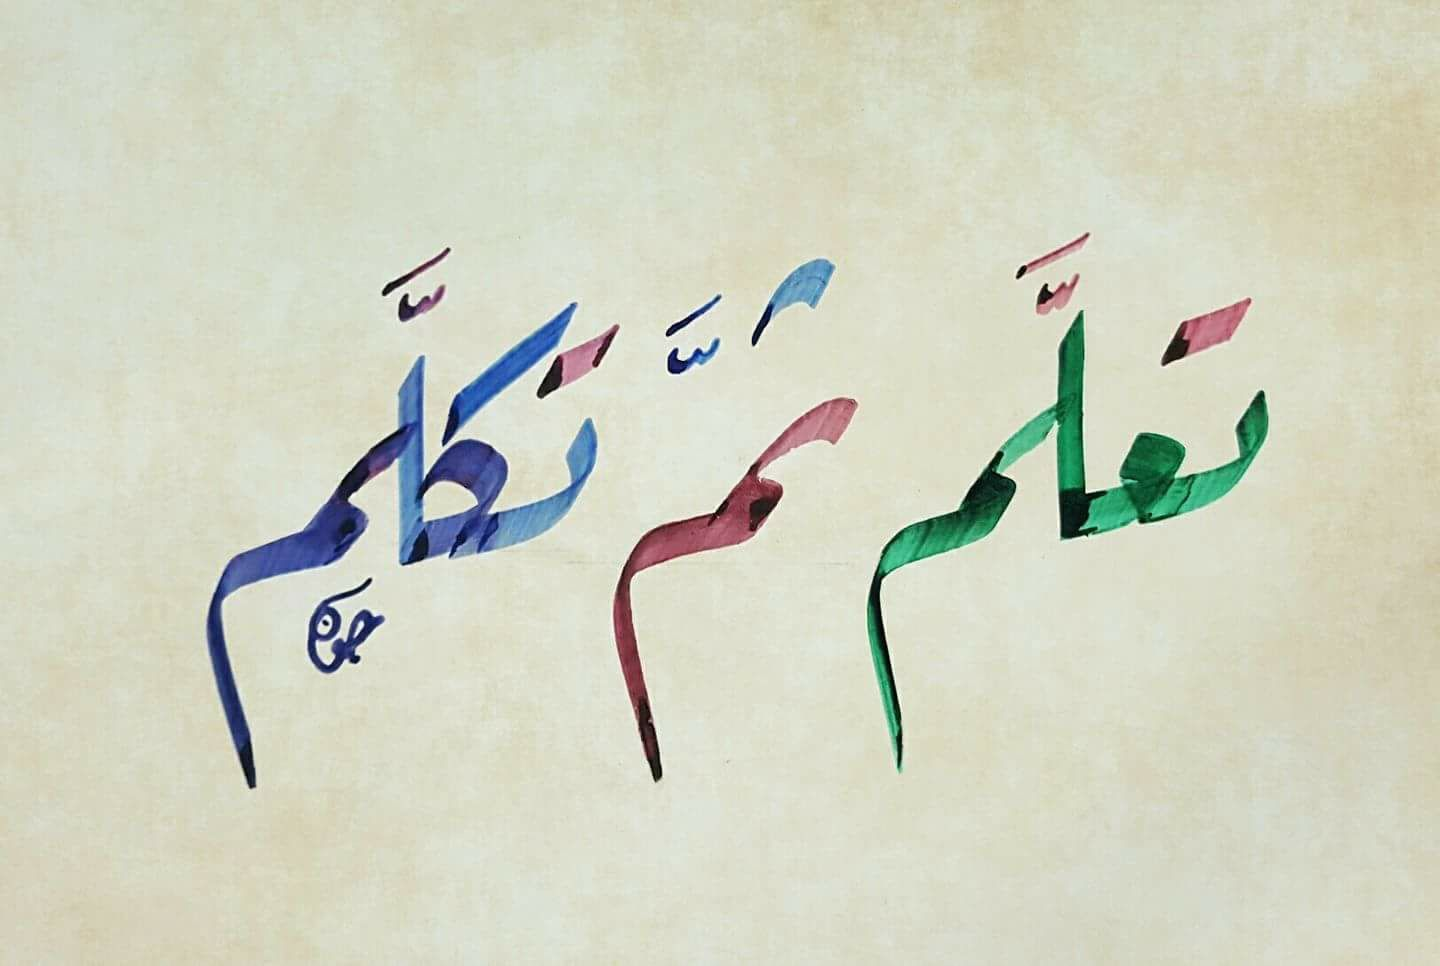 Pin By Ghadir Ahmad Joseph On خط الرقعة Arabic Quotes Islamic Quotes Wallpaper Words Quotes